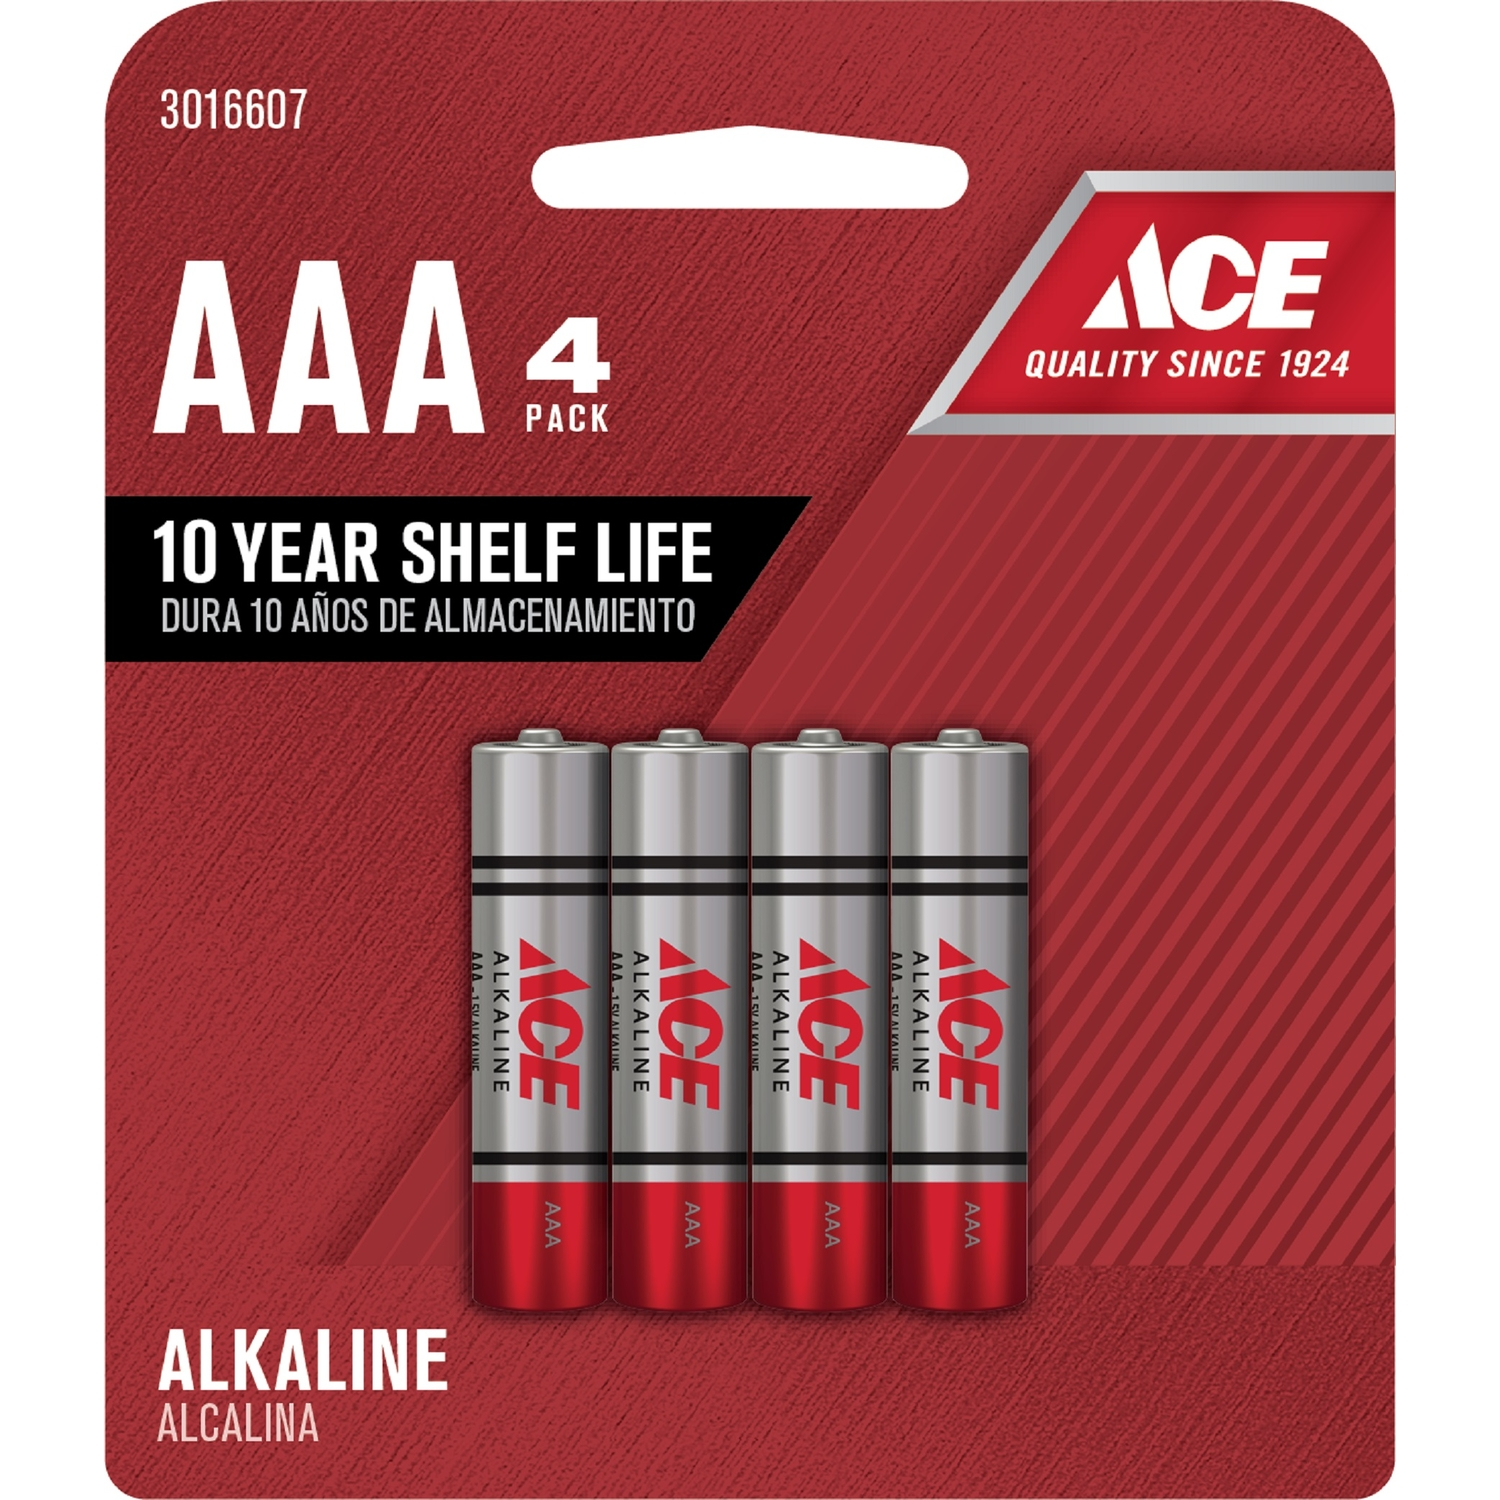 Ace  AAA  Alkaline  Batteries  1.5 volts 4 pk Carded